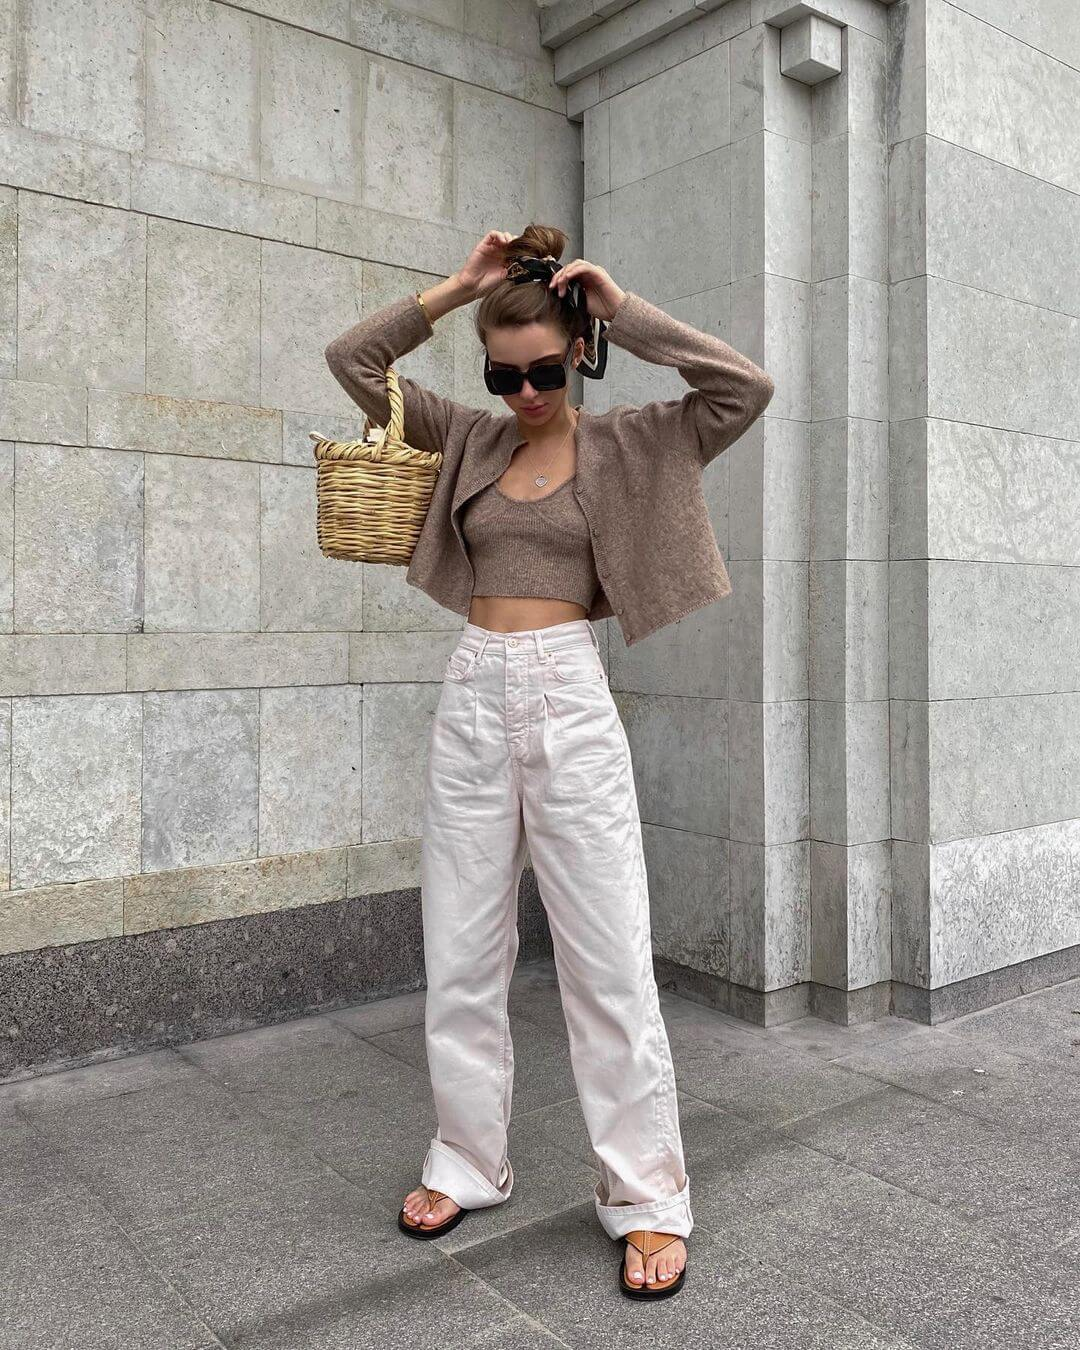 Cardigan Sets Are The Trend We Just Can't Quit